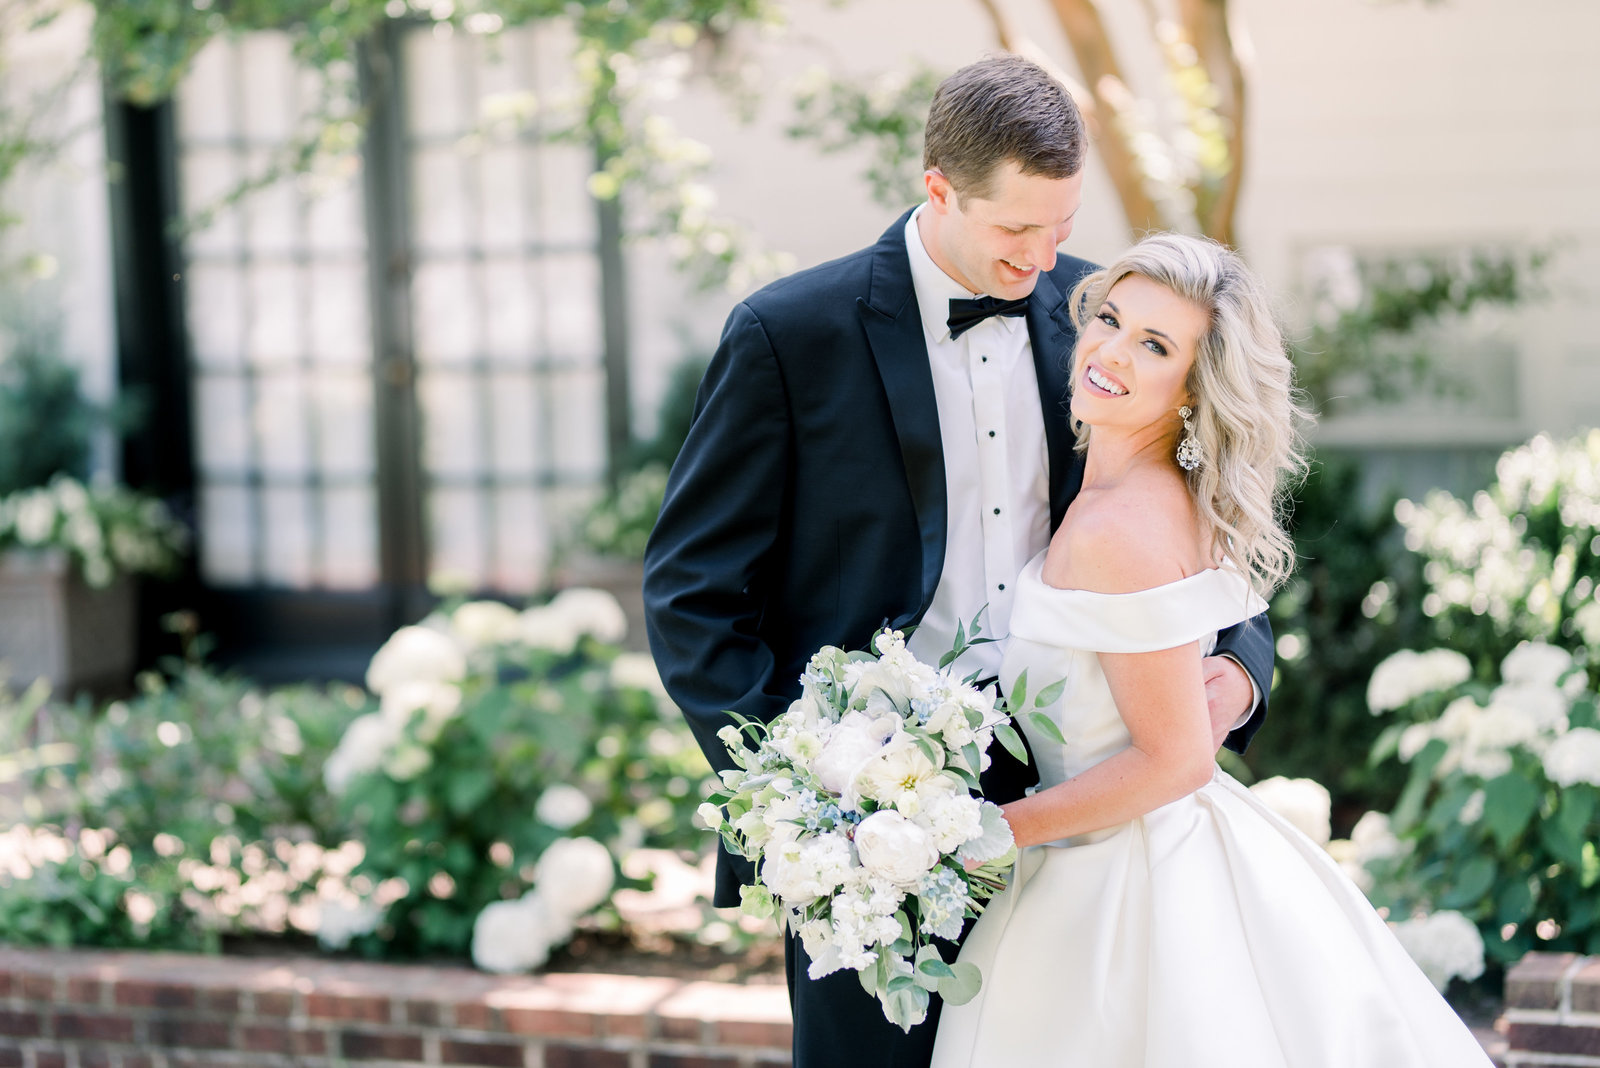 clifton-inn-charlottesville-virginia-wedding-photographer-photo584